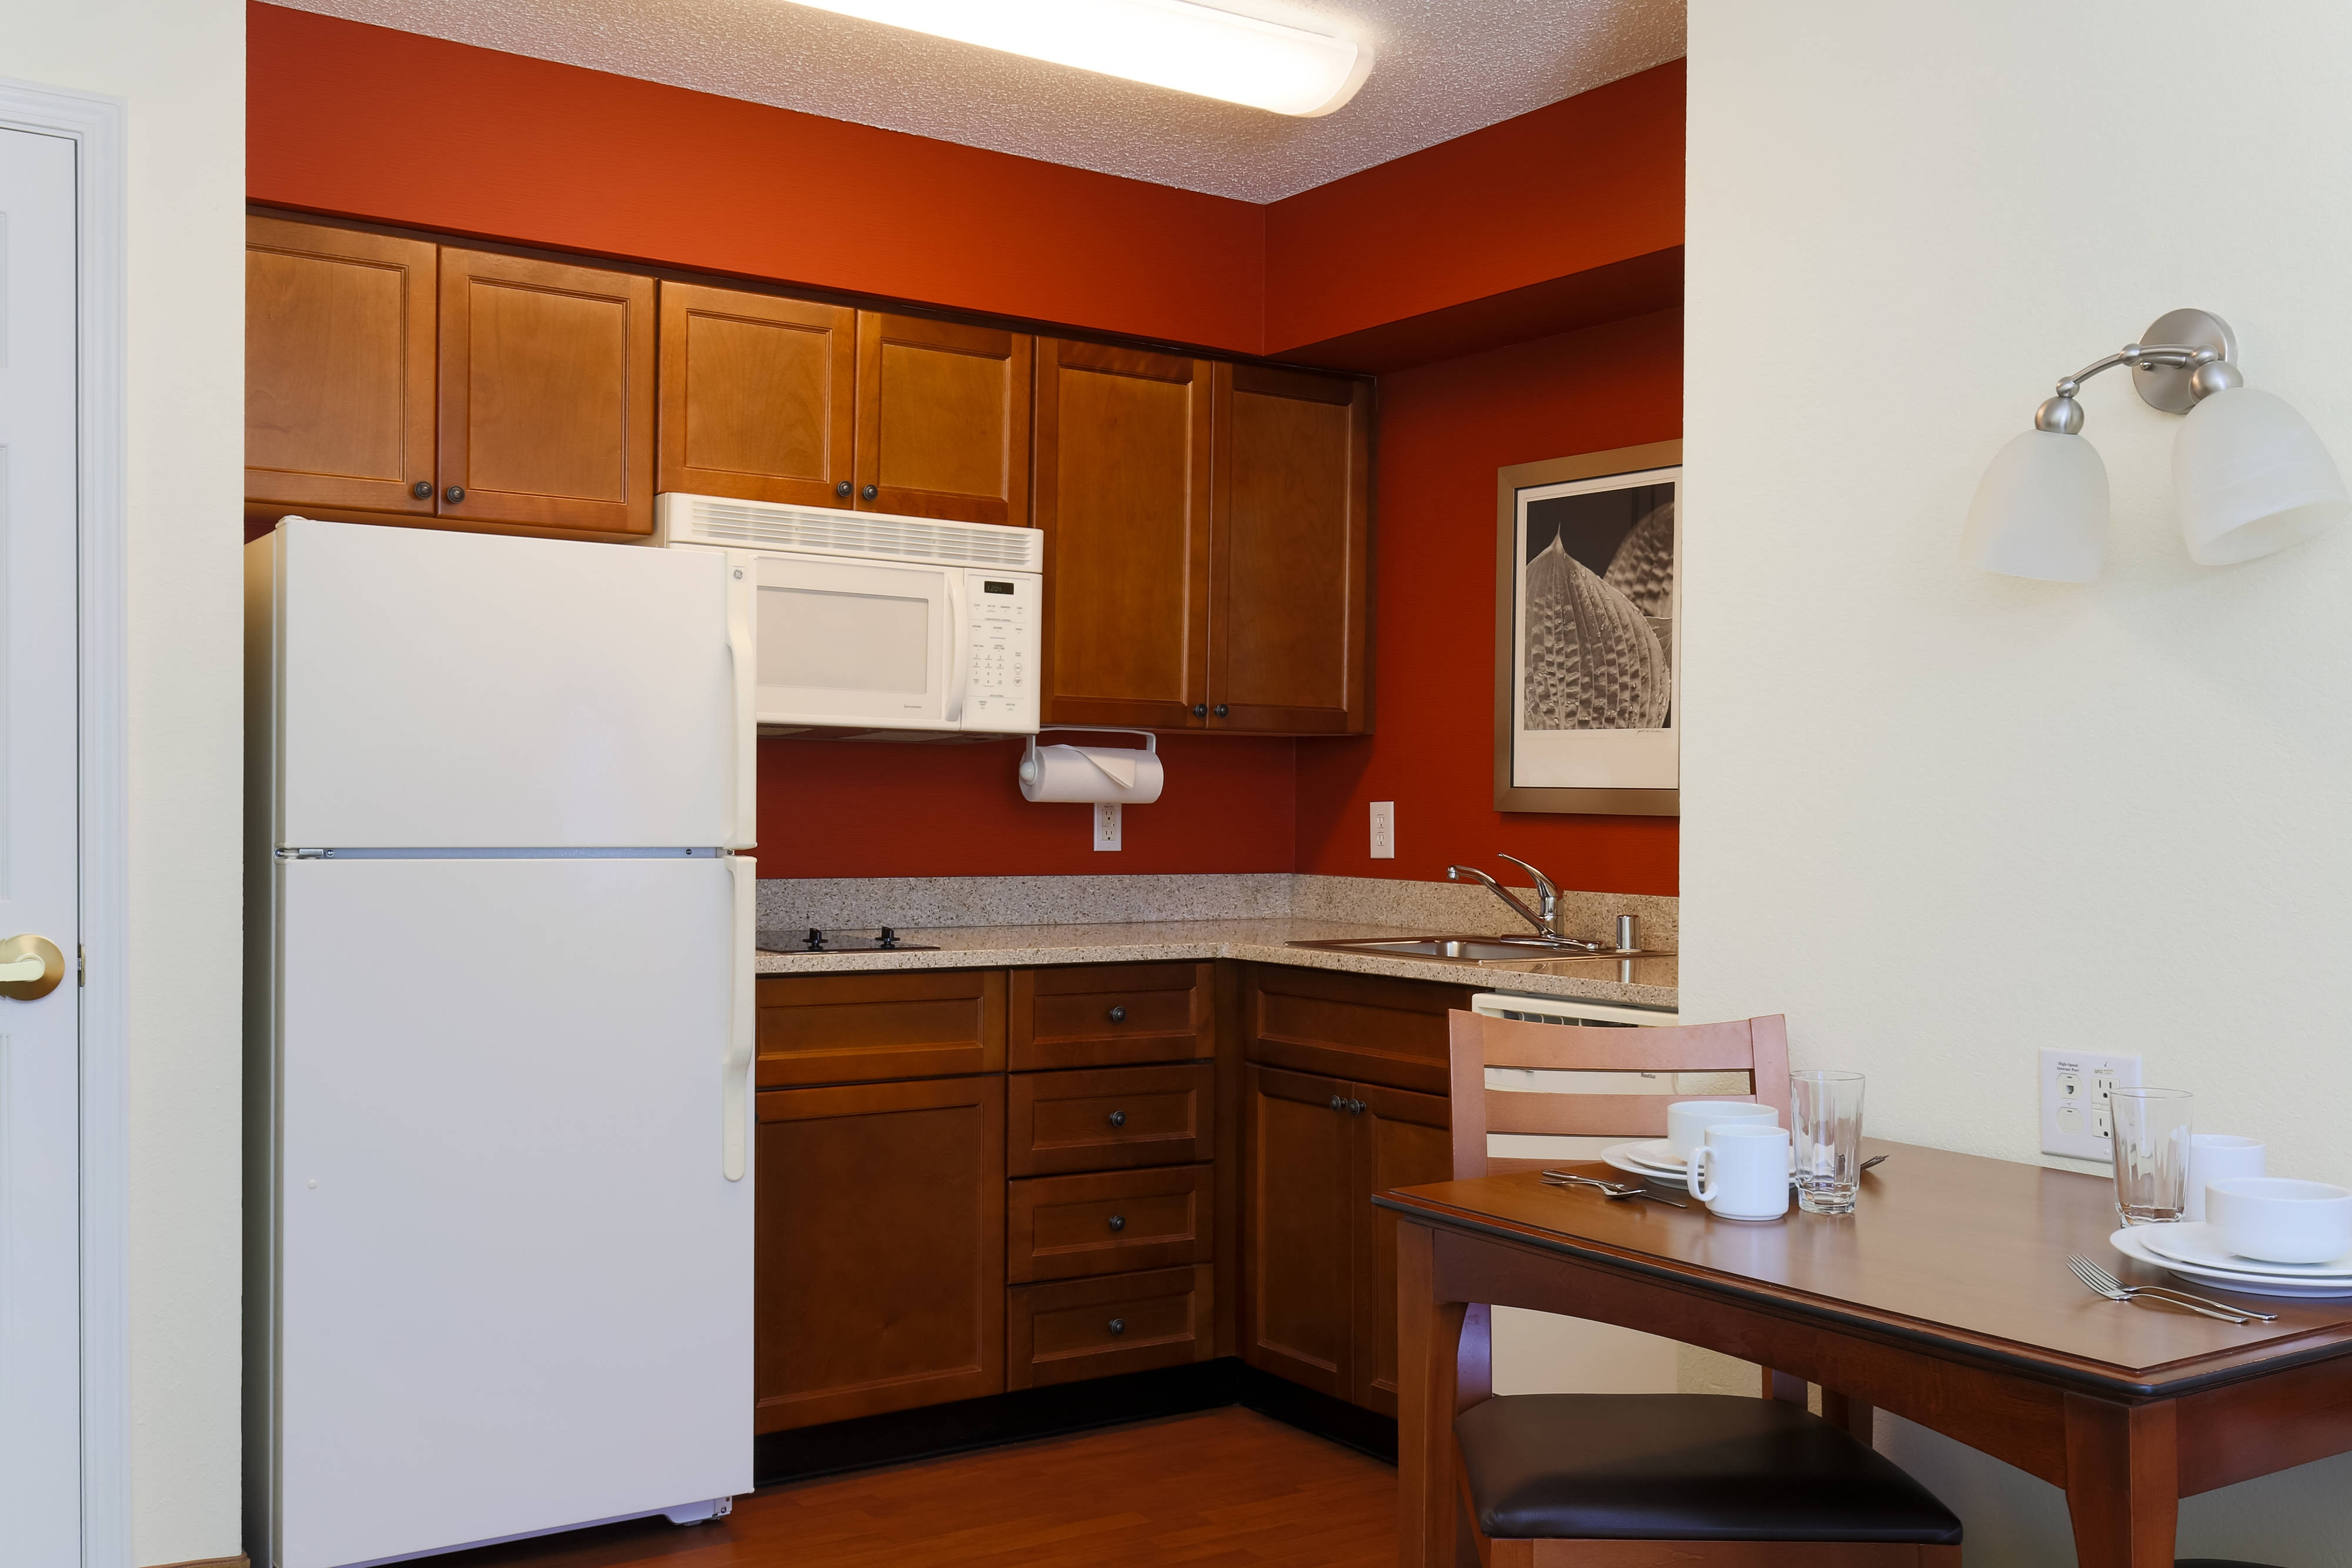 Fort Smith Arkansas One-Bedroom Kitchen